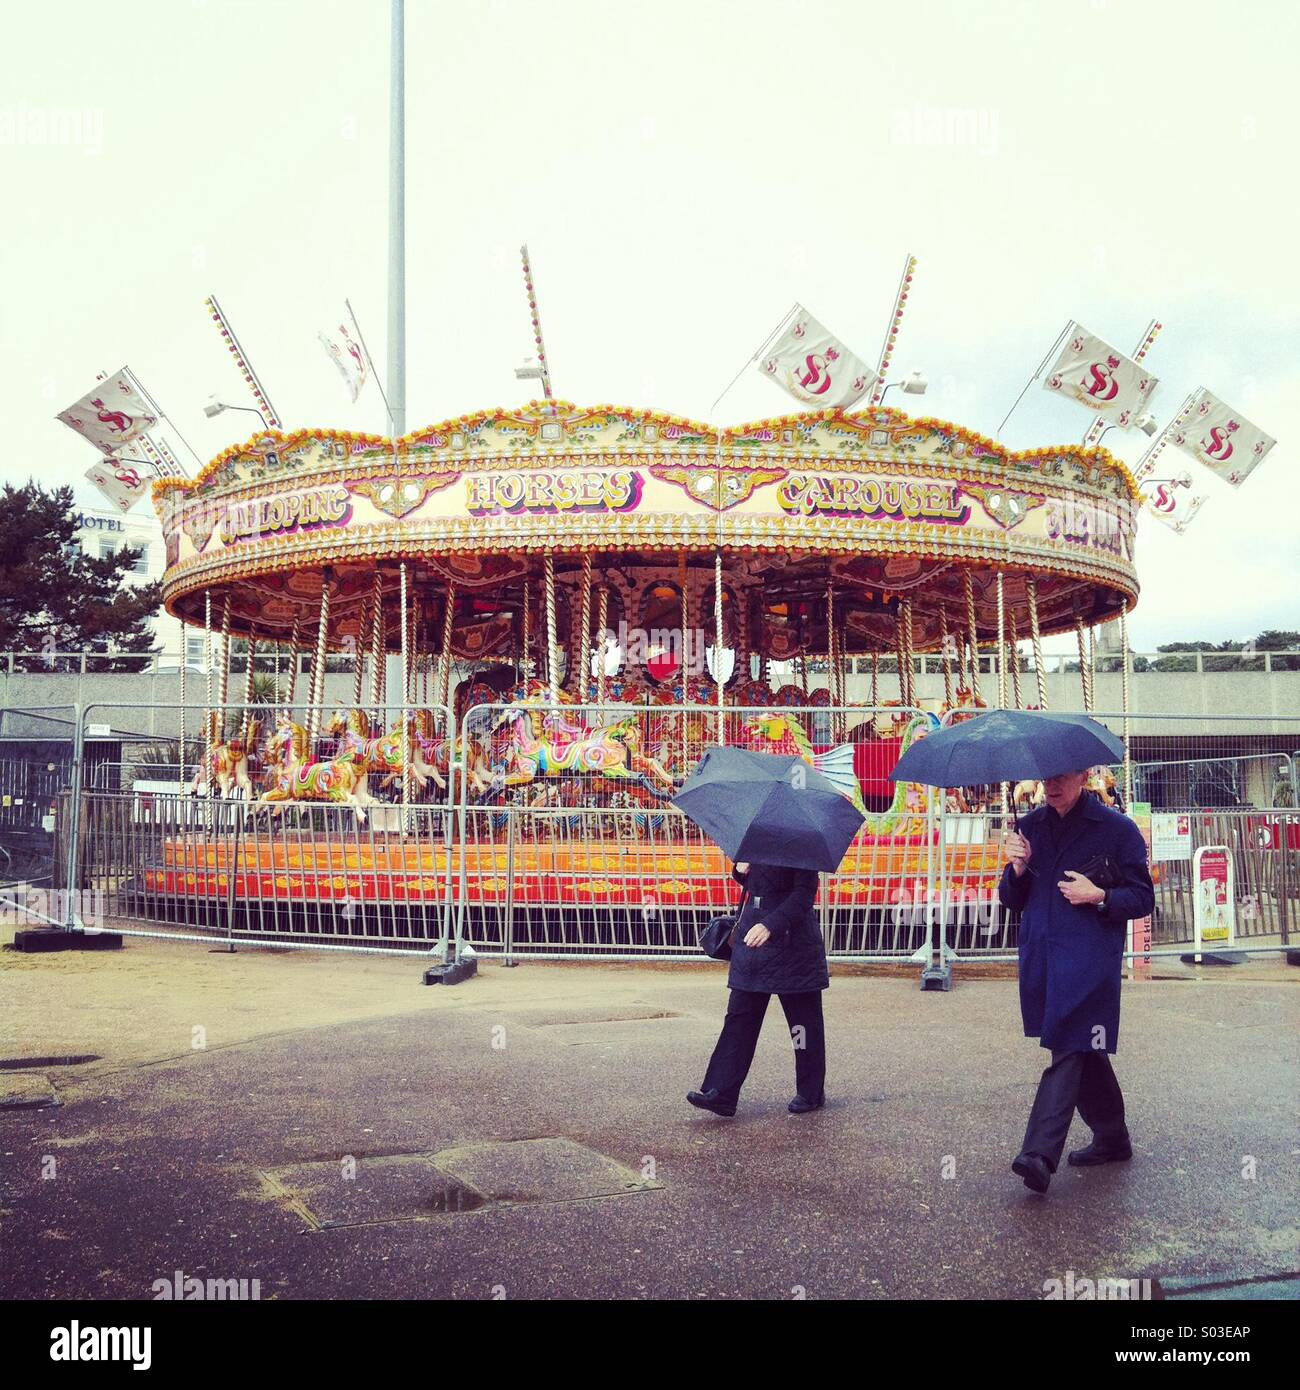 Shut merry go round in Bournemouth on a rainy week day. Two people with black umbrellas passing. - Stock Image